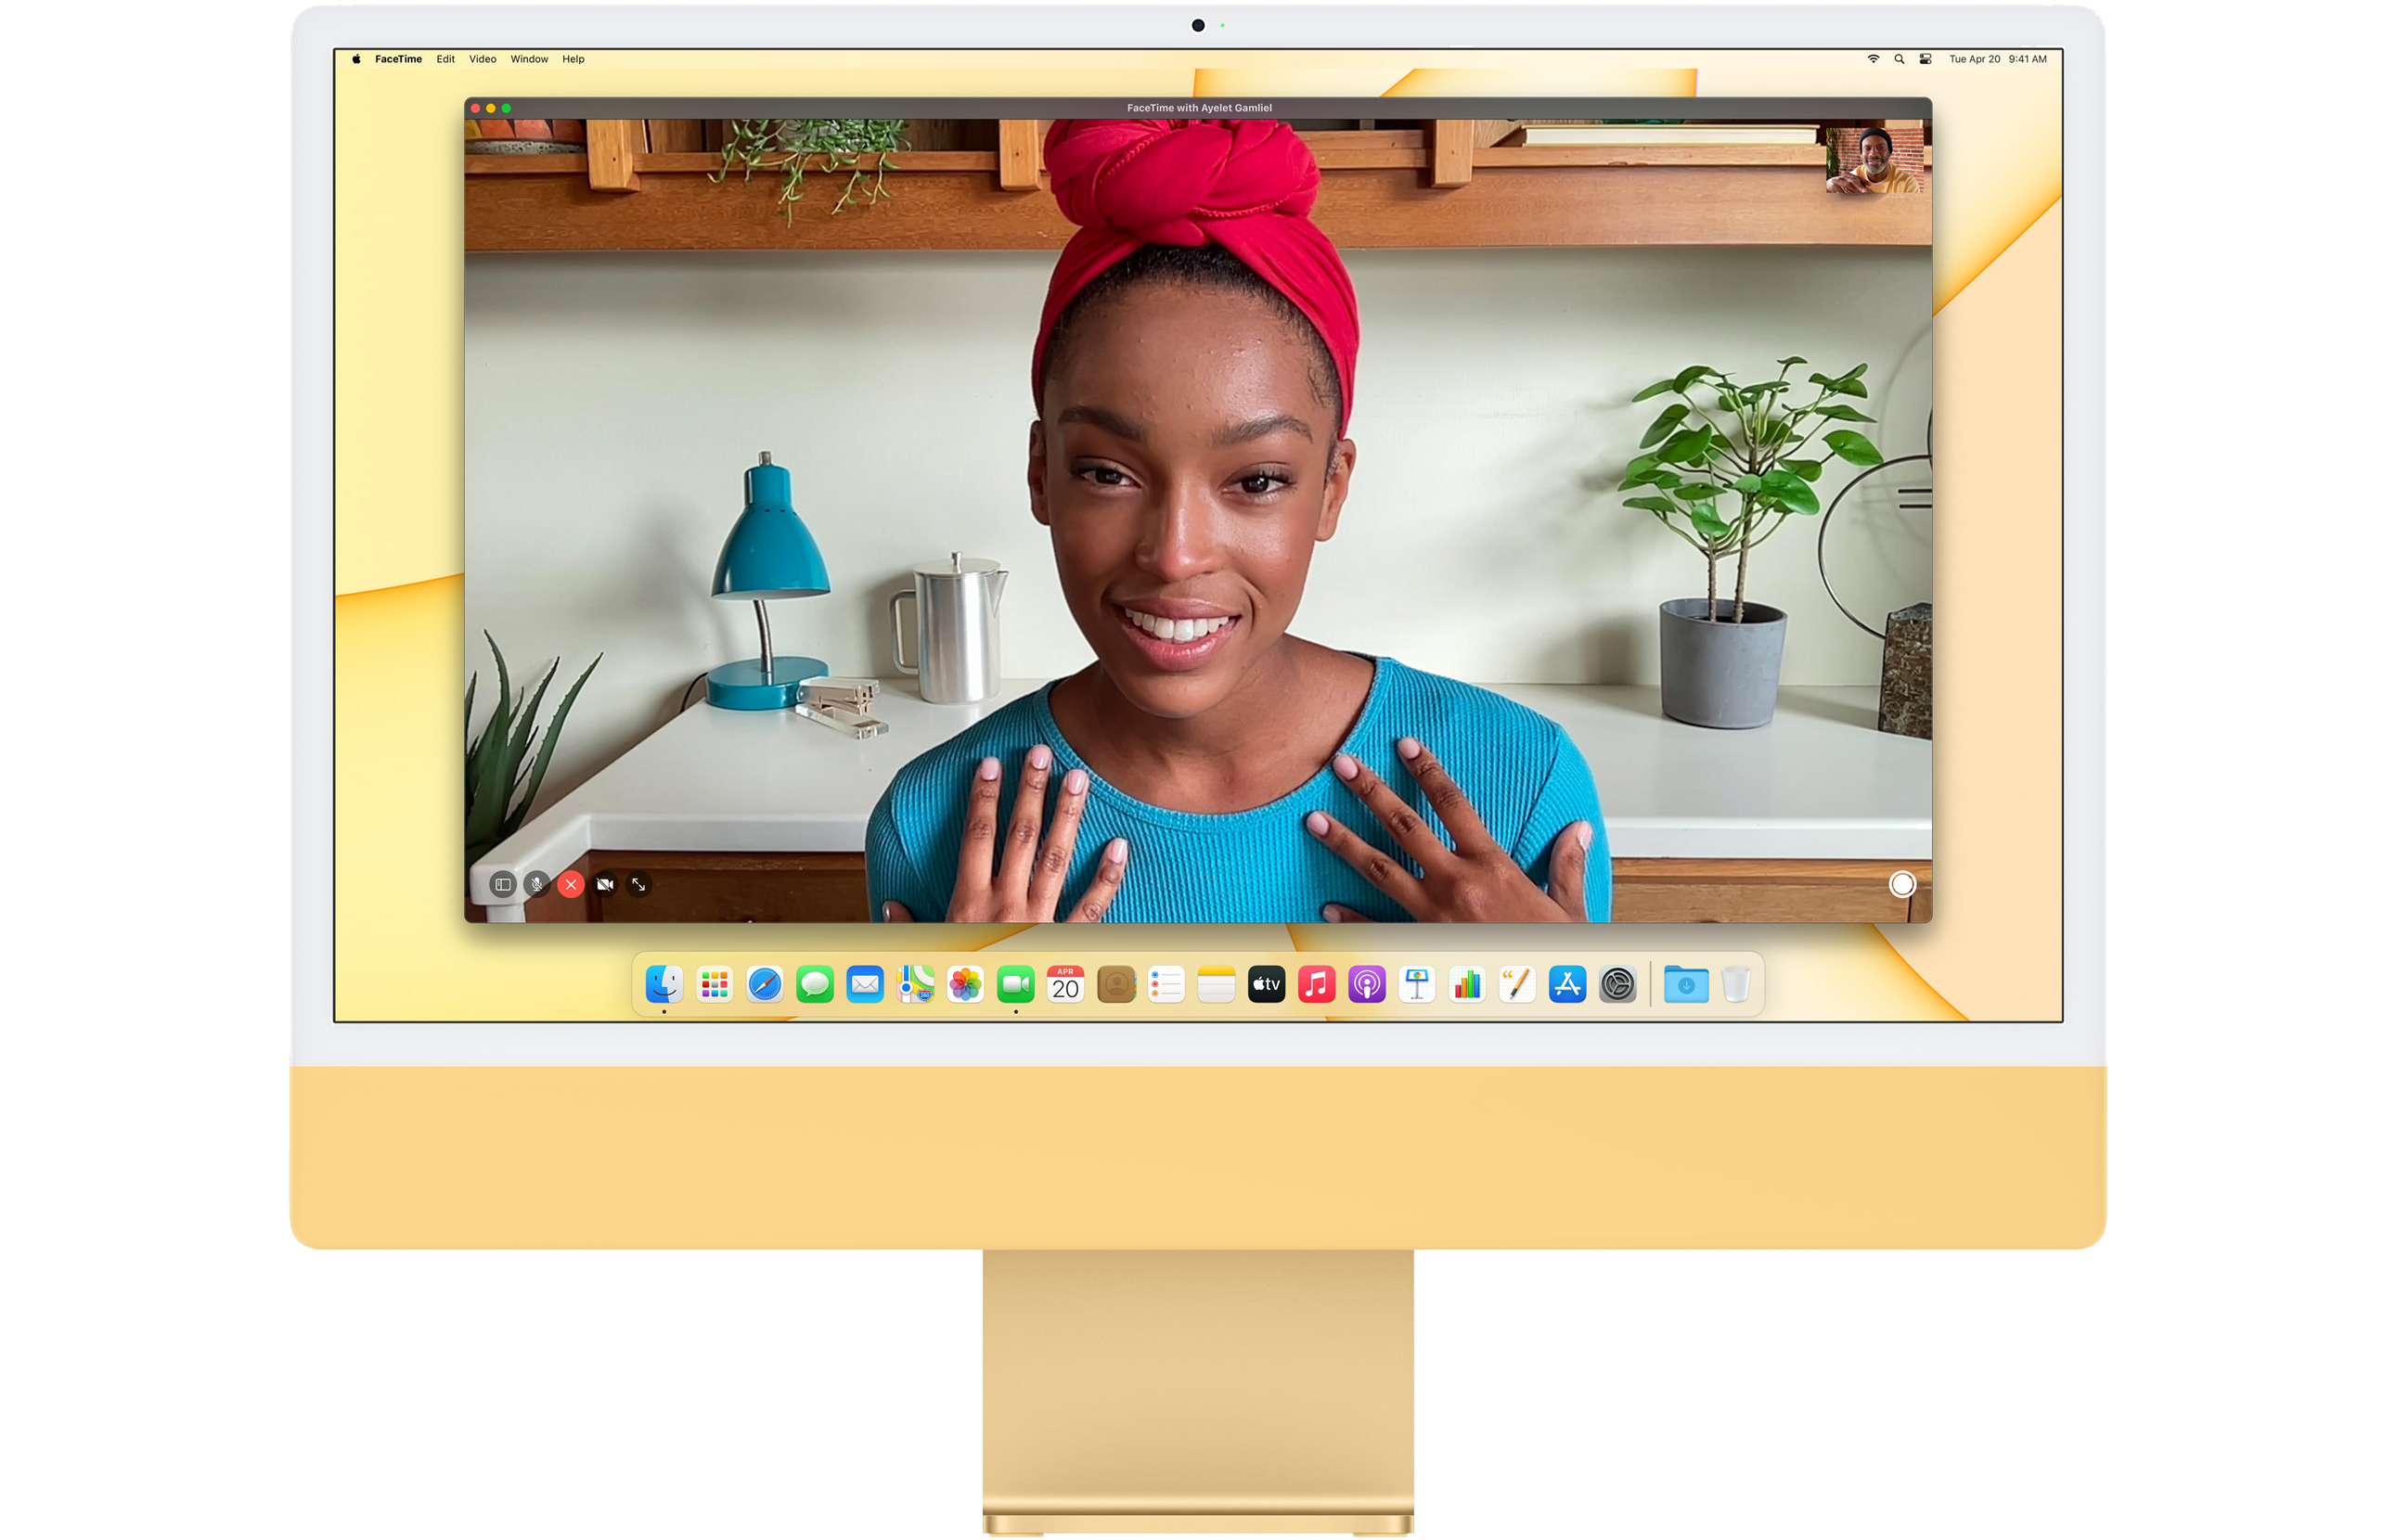 #Apple 24-inch iMac with Retina 4.5K display: Apple M1chip with 8-core CPU and 8-core GPU, 512GB - Pink